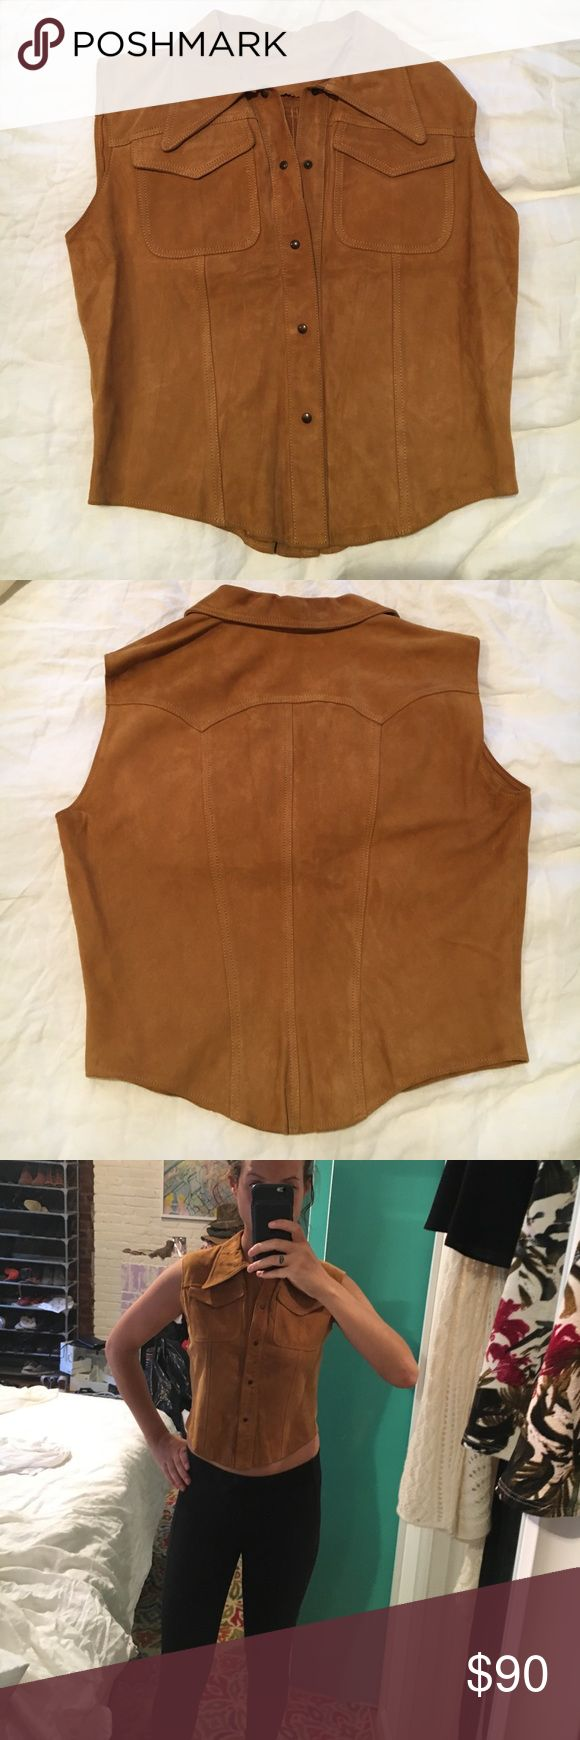 Vintage camel color suede vest 100% suede, camel color, buttons up, sleeveless with 2 pockets on busts, snaps all the way up, collar, can be worn with or without shirt underneath, slightly cropped. Brand new condition Vintage Jackets & Coats Vests